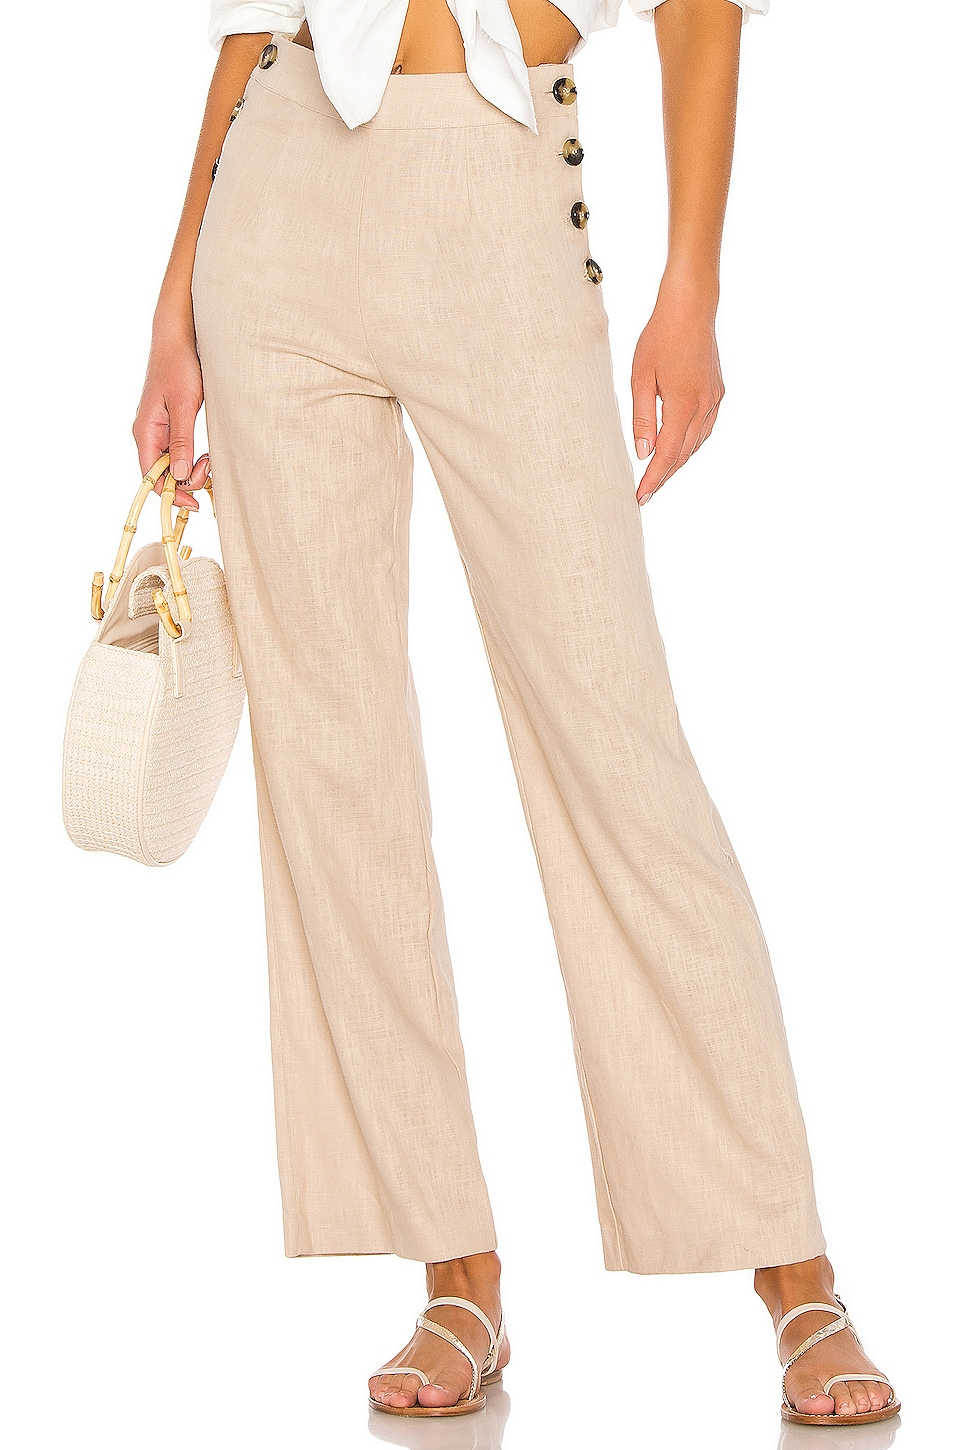 LPA Jacopo Pant in Sand